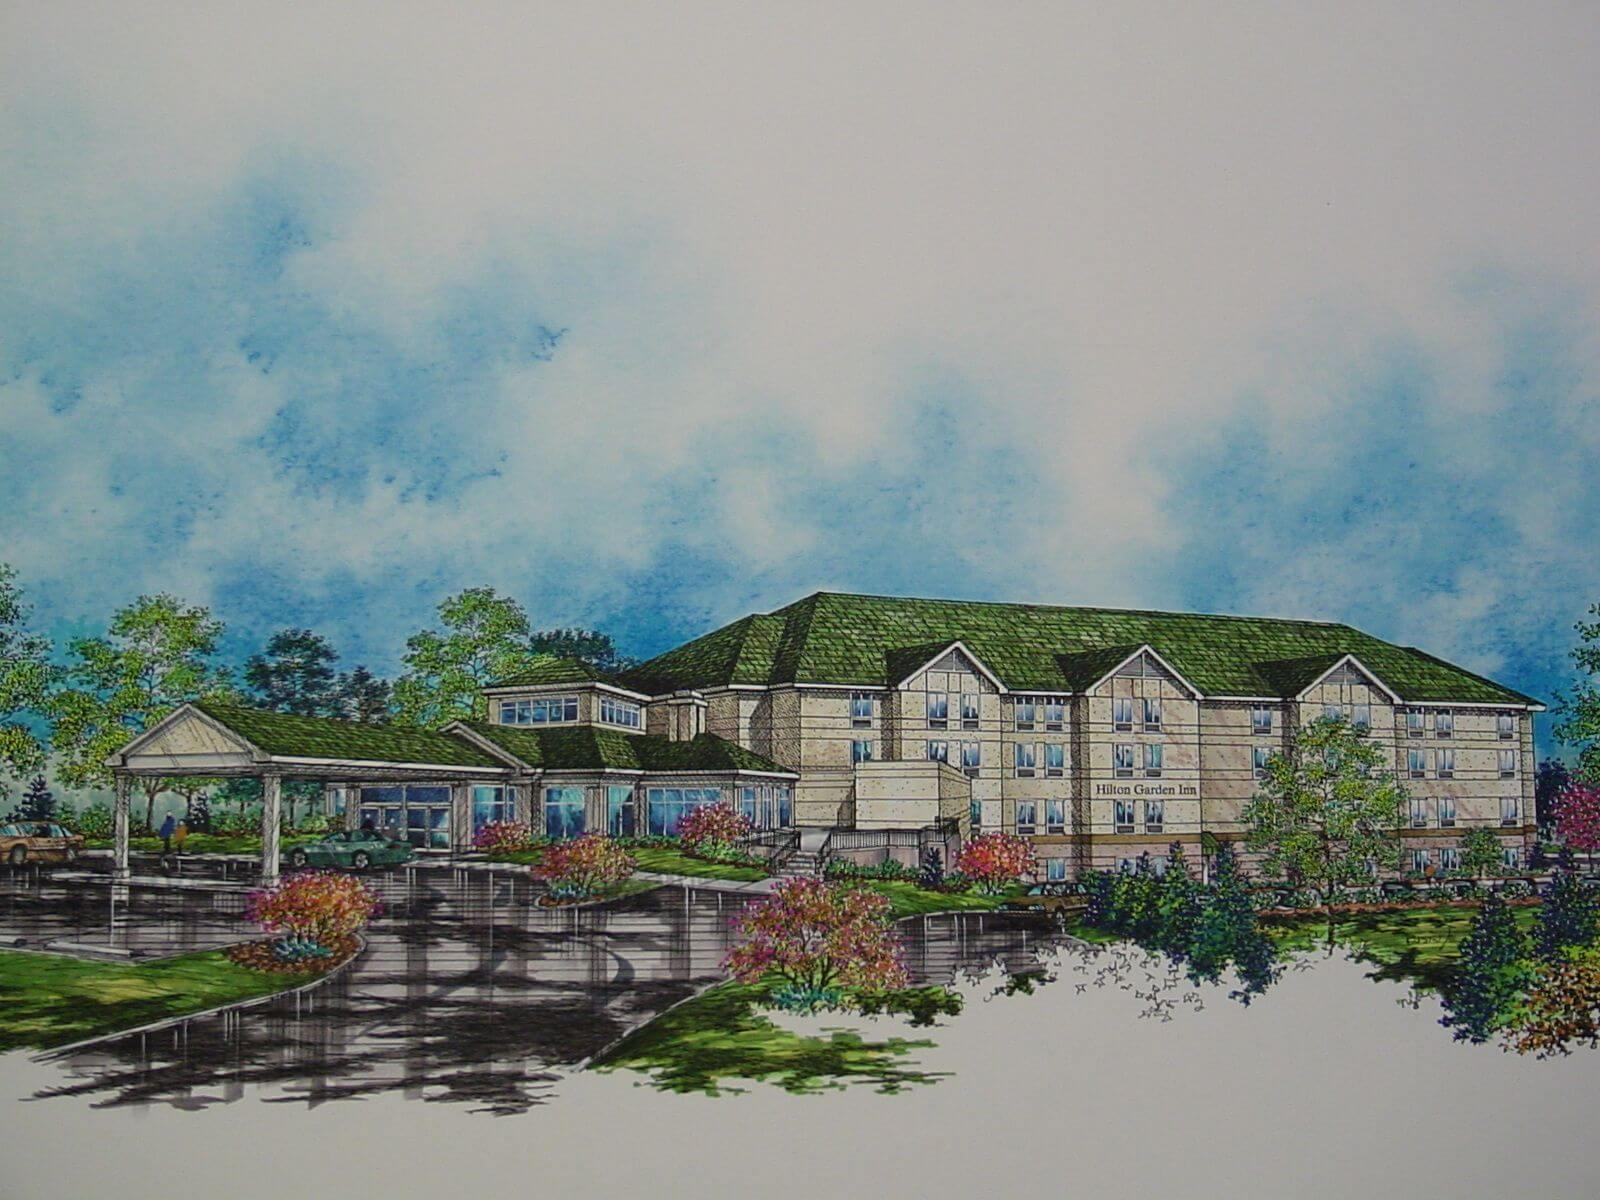 hilton garden inn before concept drawing, asset management